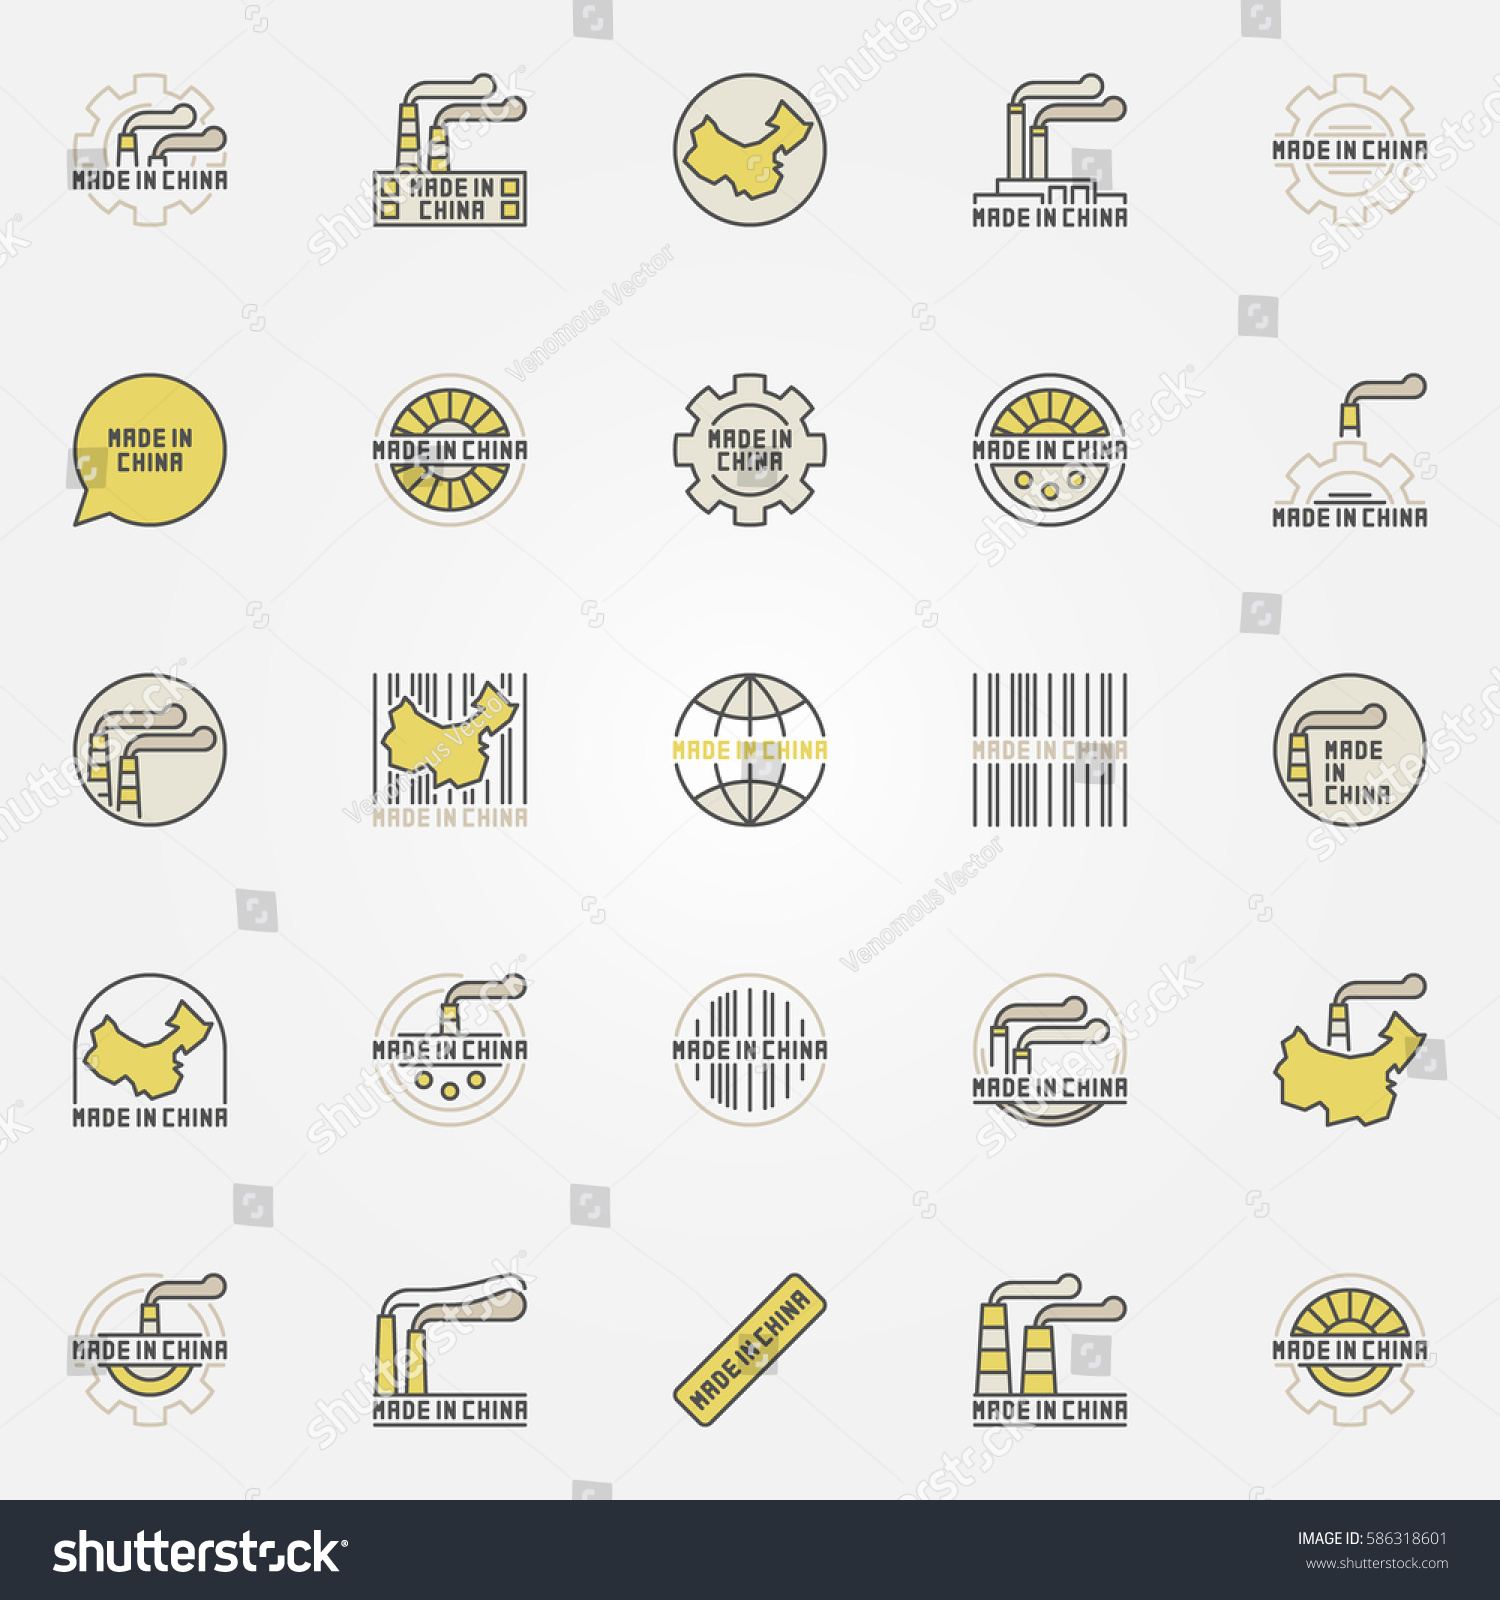 Made China Colorful Icons Vector Collection Stock Vector 586318601